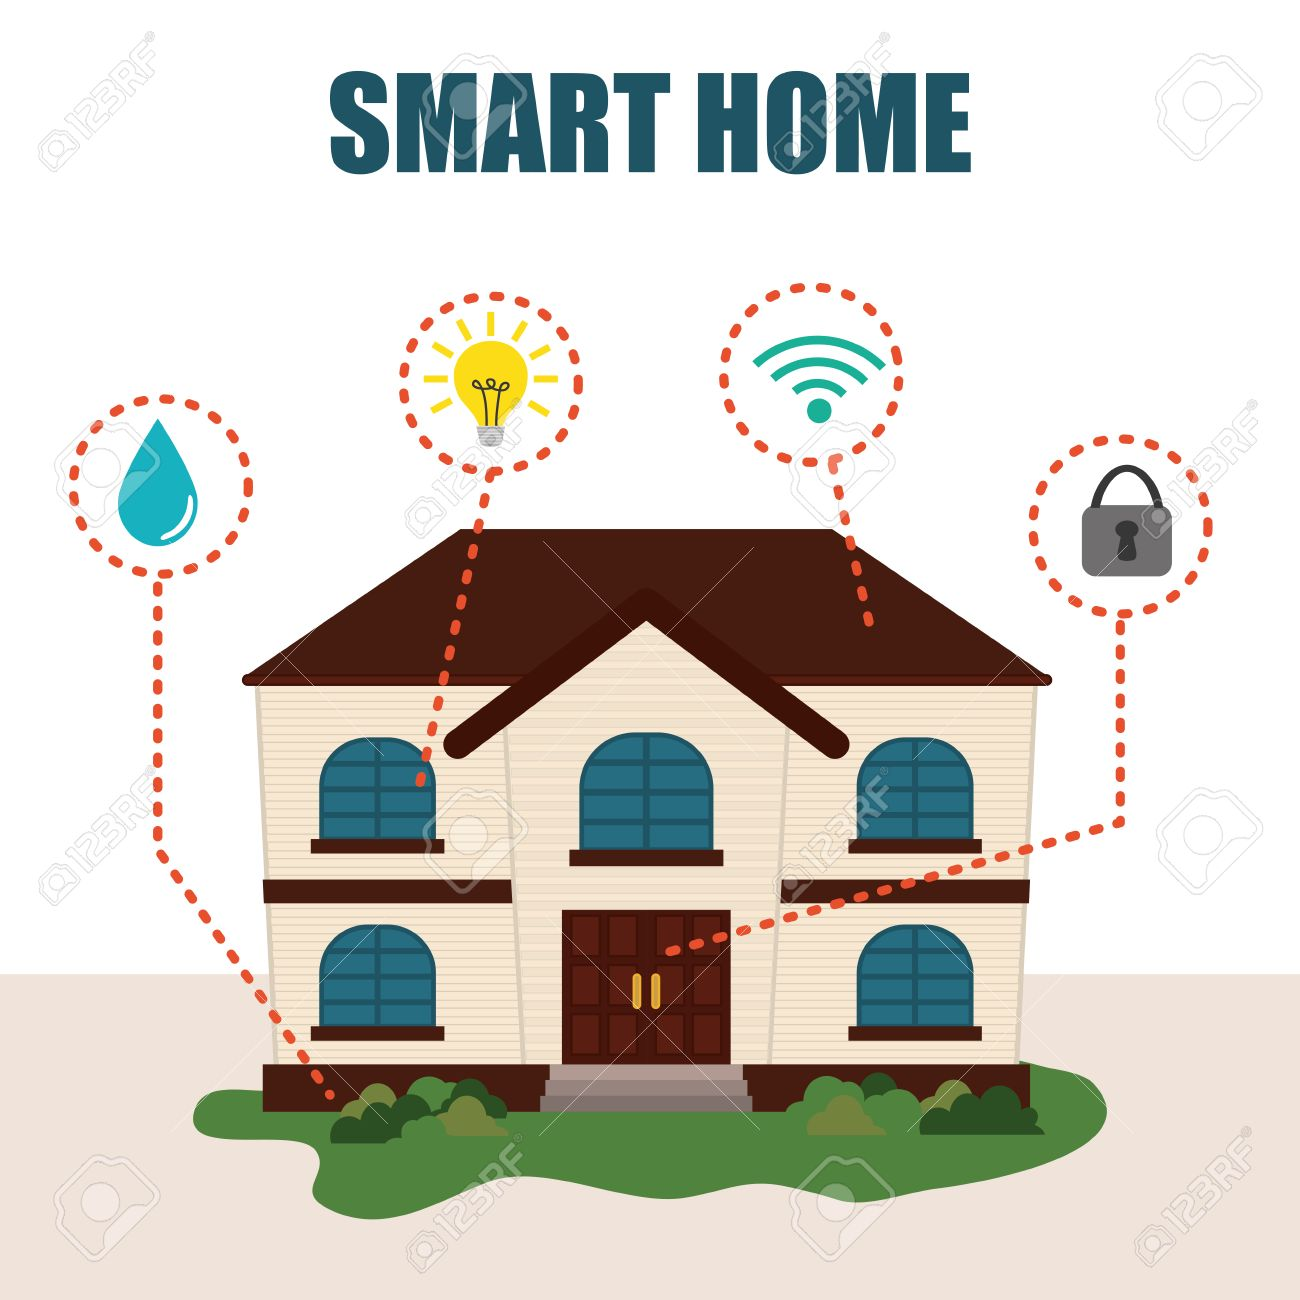 Perfect Smart Home Design, Vector Illustration Eps10 Graphic Stock Vector   36826585